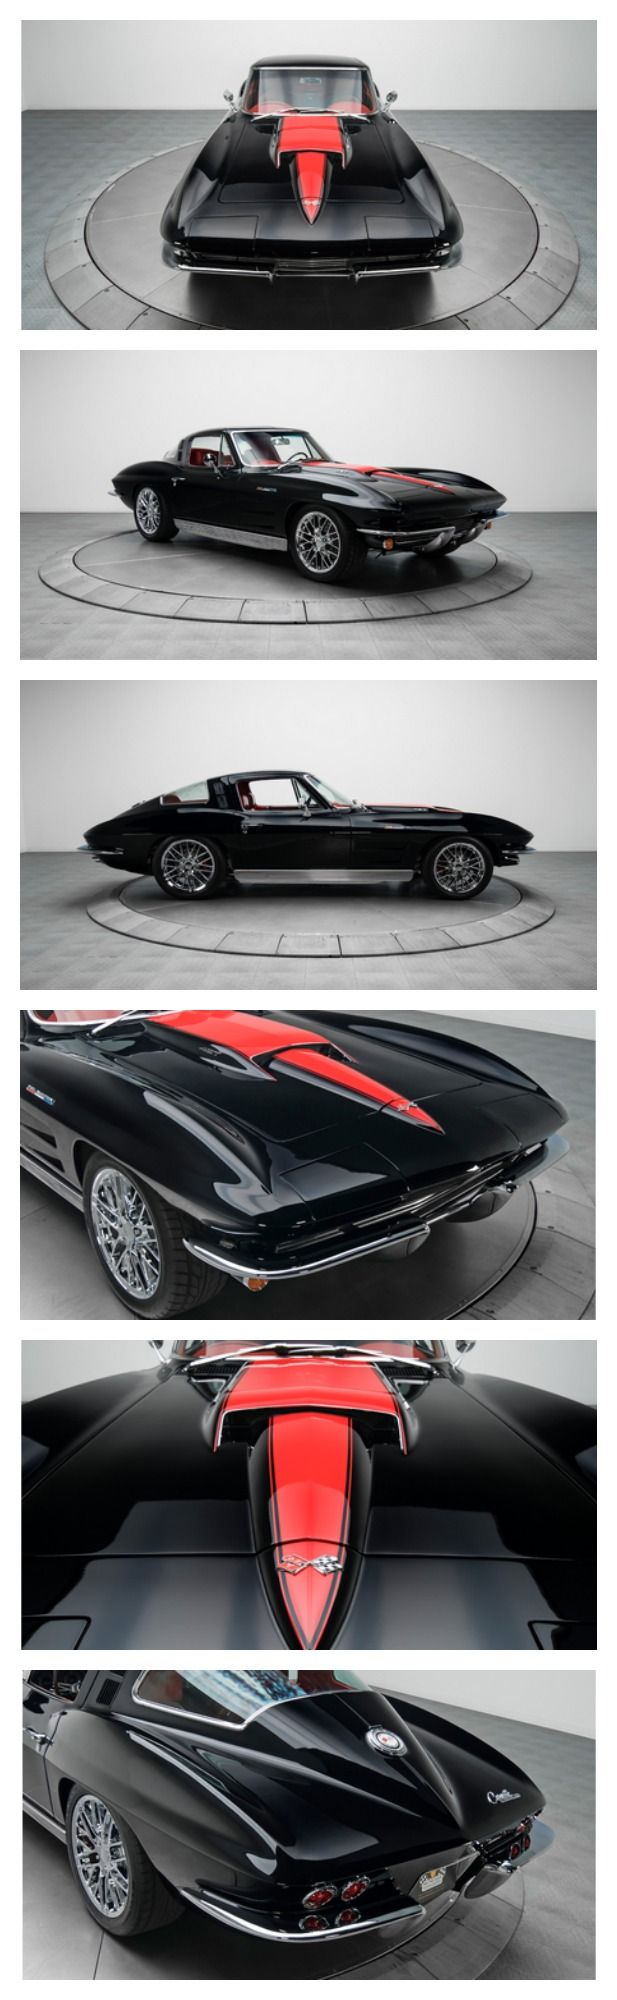 1964 Chevy Corvette Stingray - If you're looking for a razor-sharp sports car that offers vintage style and top notch performance, your search is officially over! #ThrowbackThursday - LGMSports.com